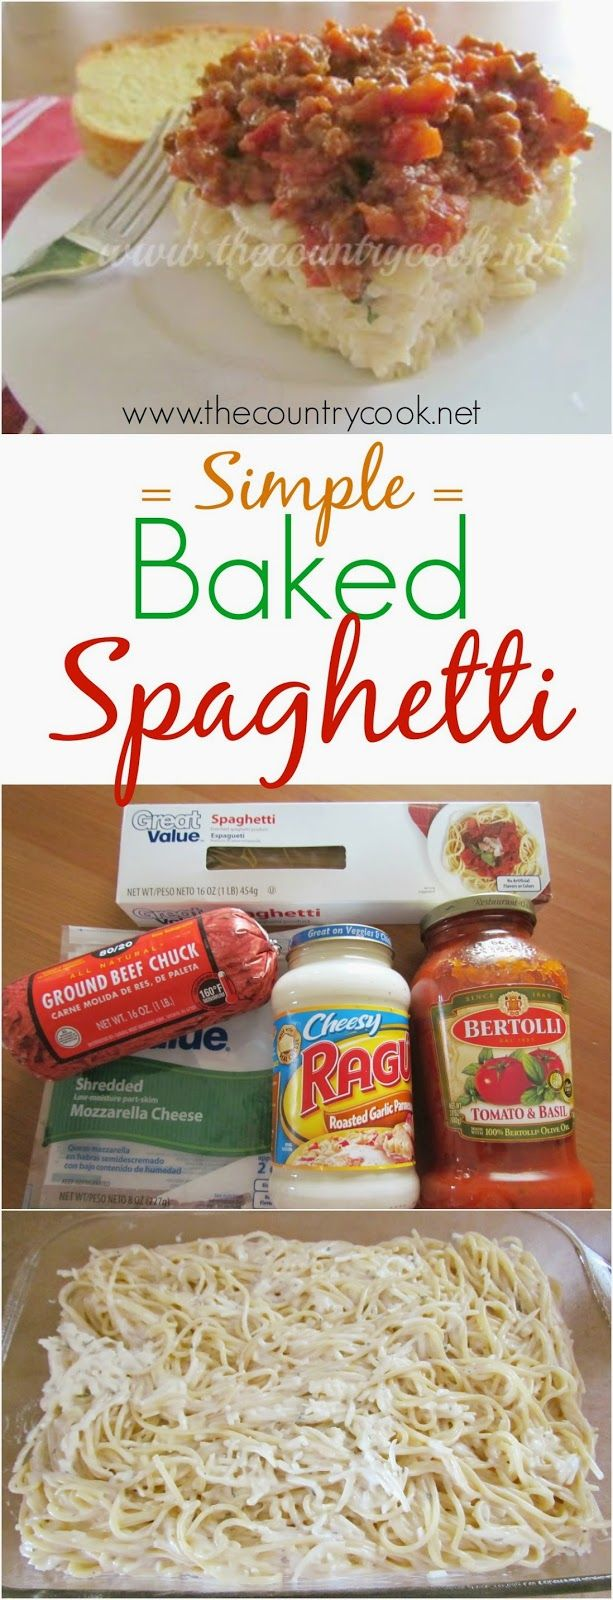 how to cook spaghetti sauce from jar on stove